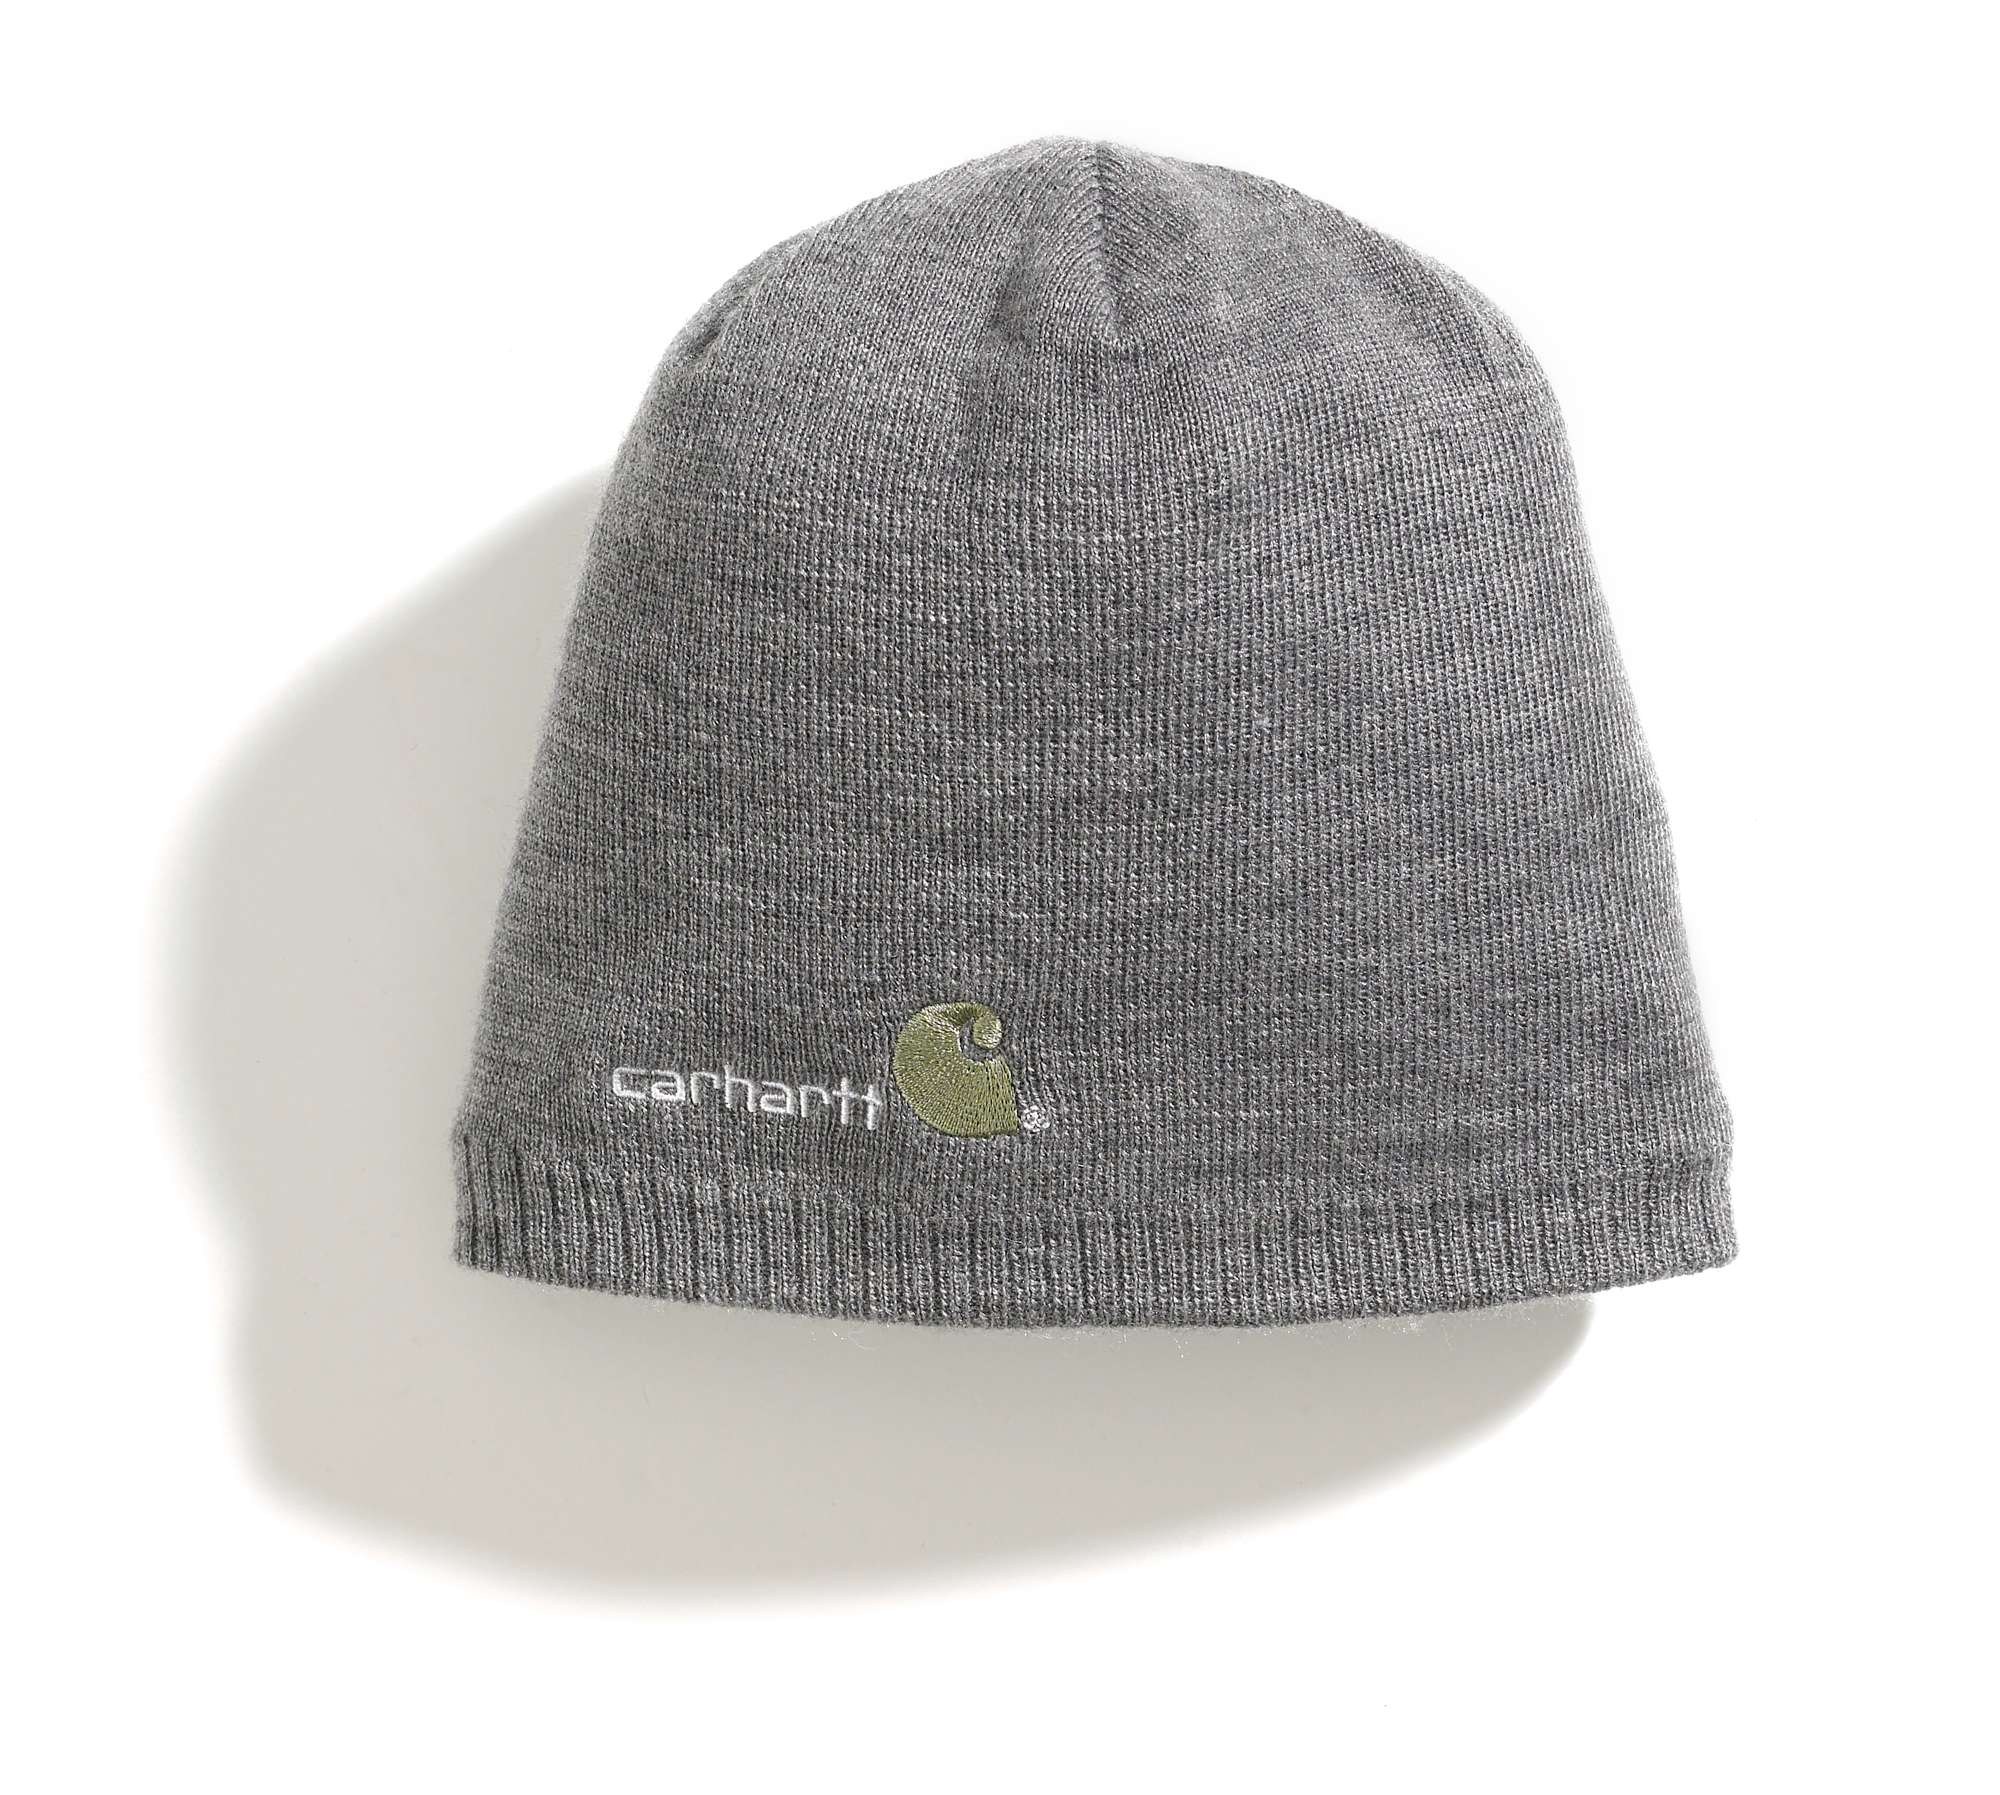 Carhartt Reversible Logo Panel Hat